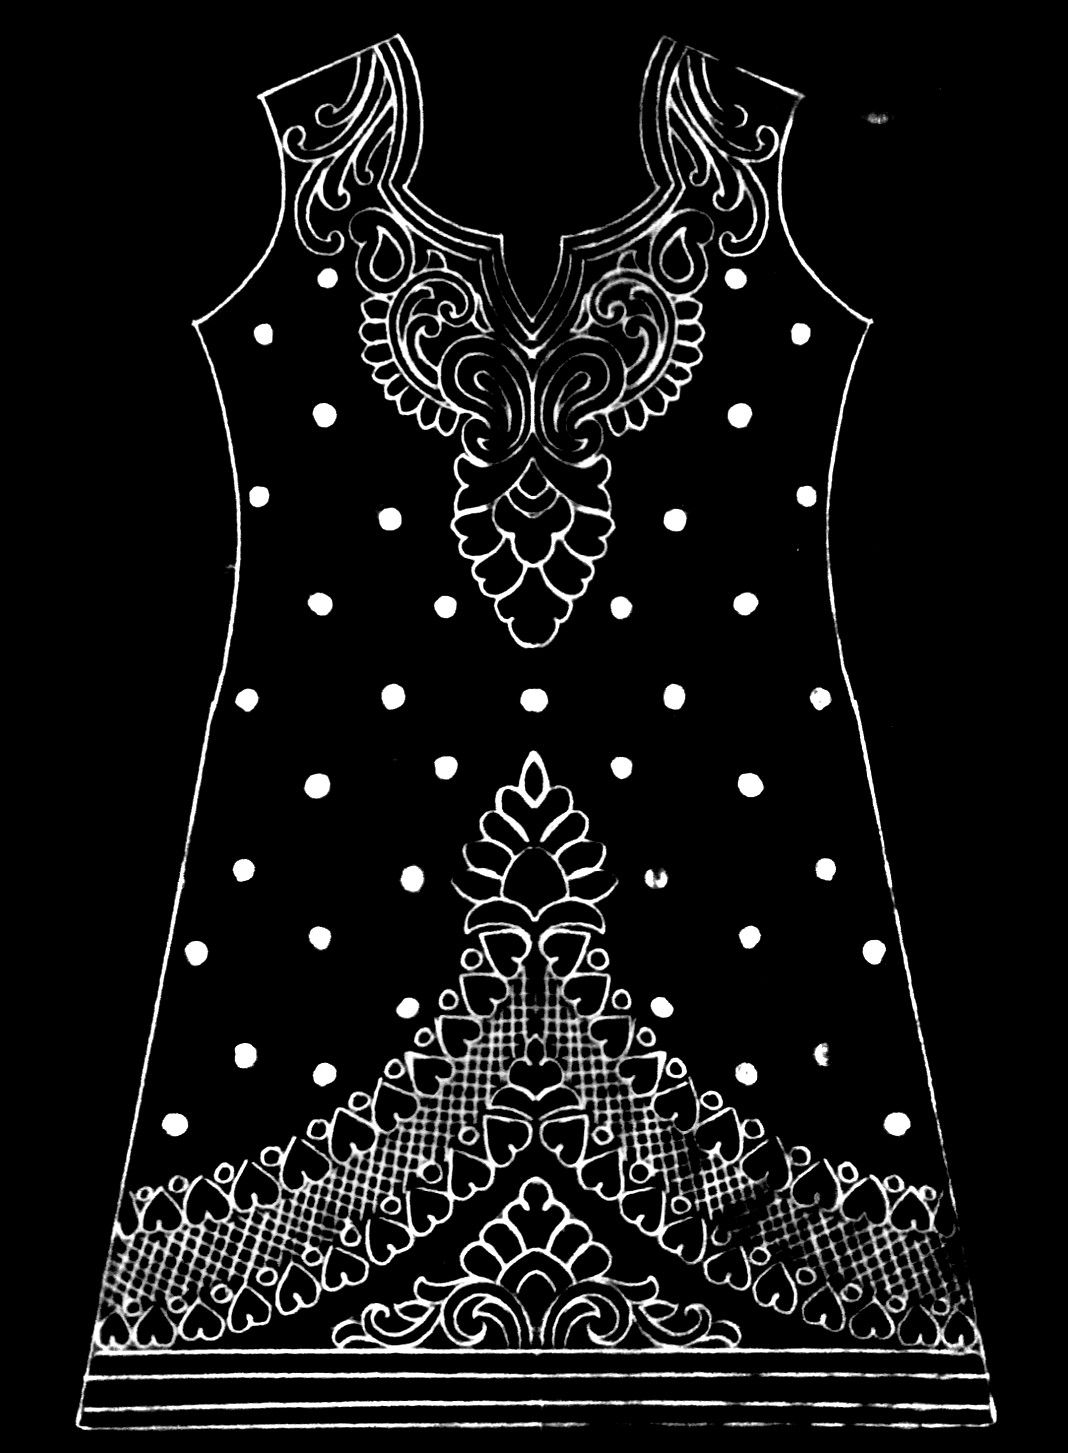 Latest hand embroidery dress design 2019/2020 || how to draw dress design || download emroidery design image.